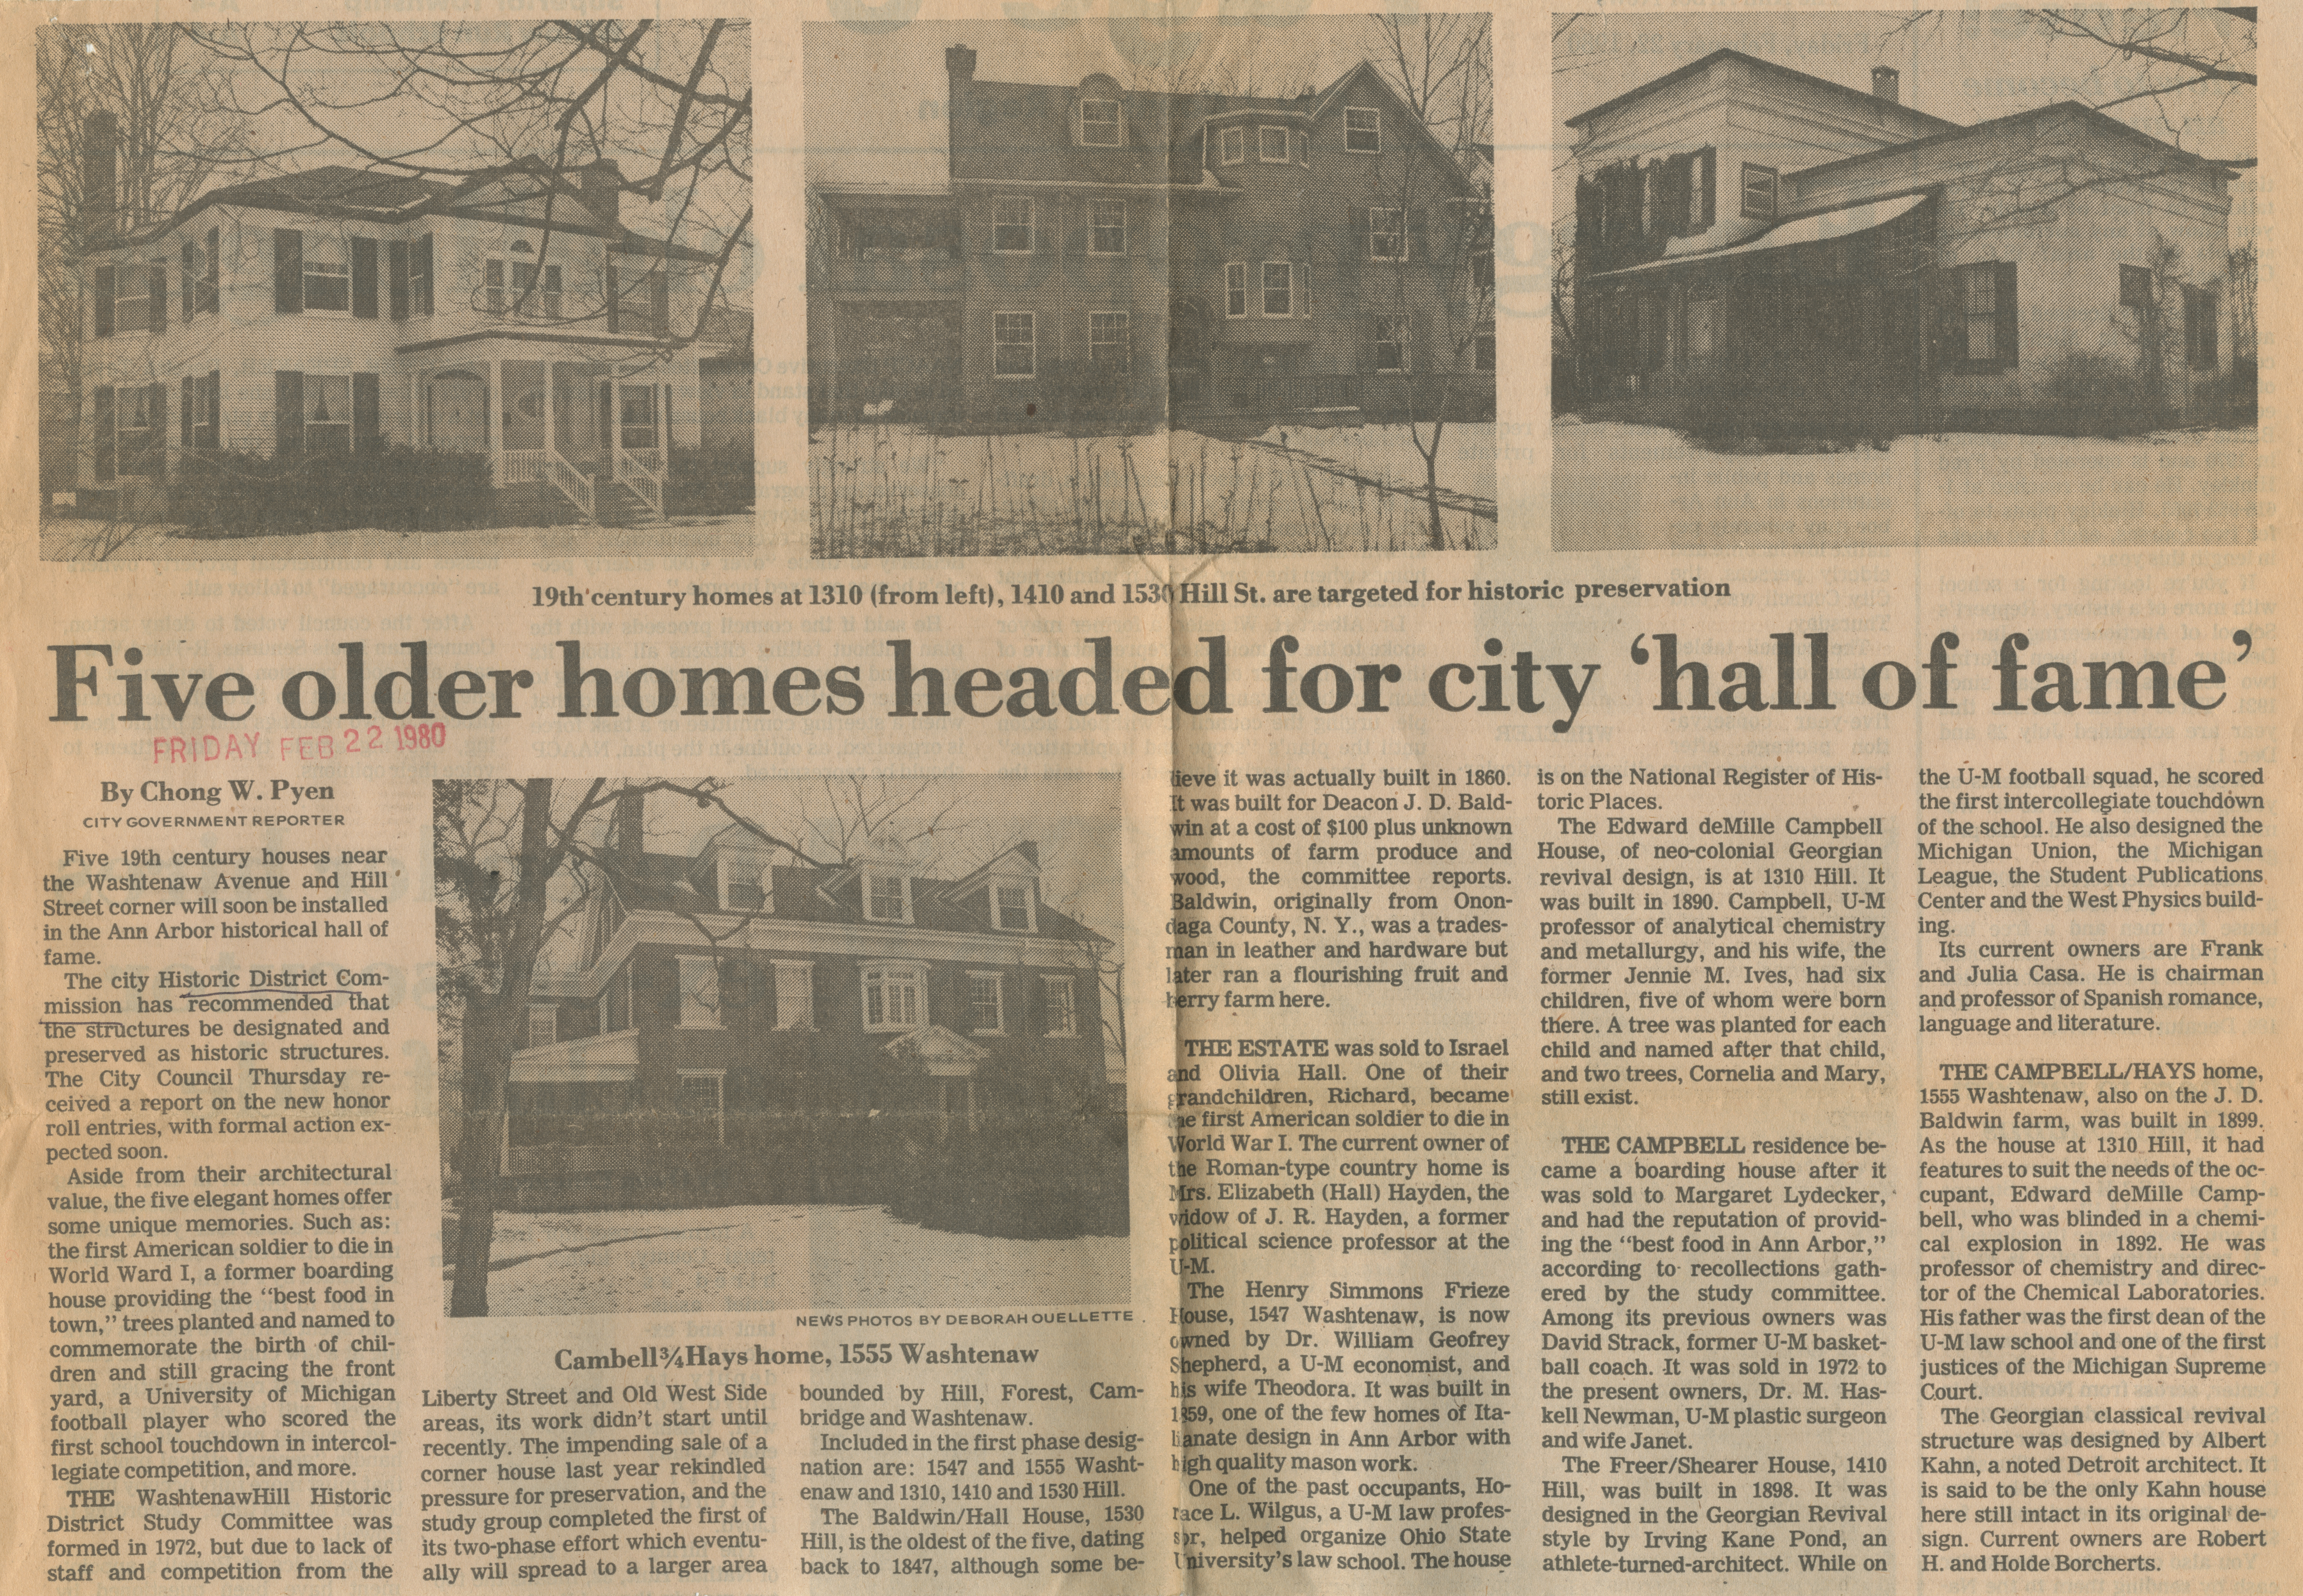 Five older homes headed for city 'hall of fame' image